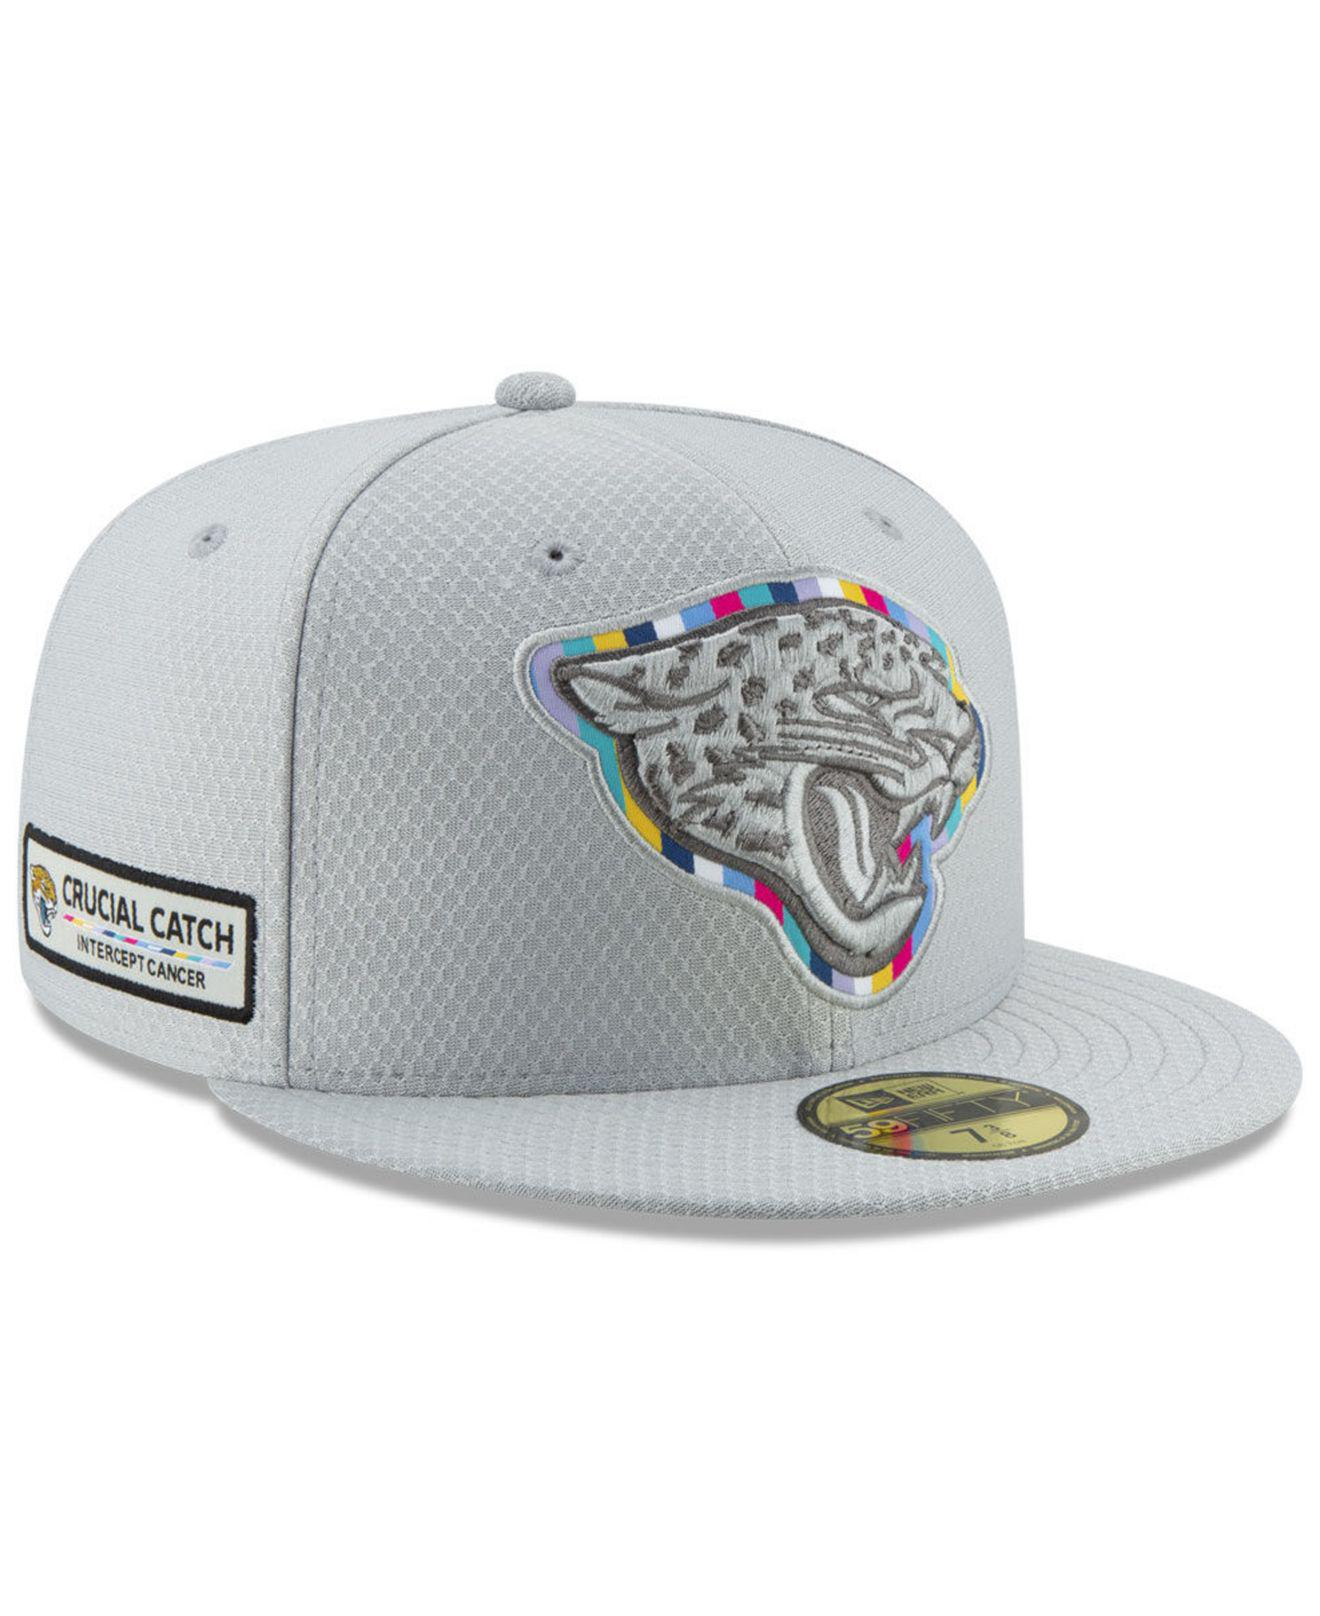 KTZ - Gray Jacksonville Jaguars Crucial Catch 59fifty Fitted Cap for Men -  Lyst. View fullscreen 2f5aa9138